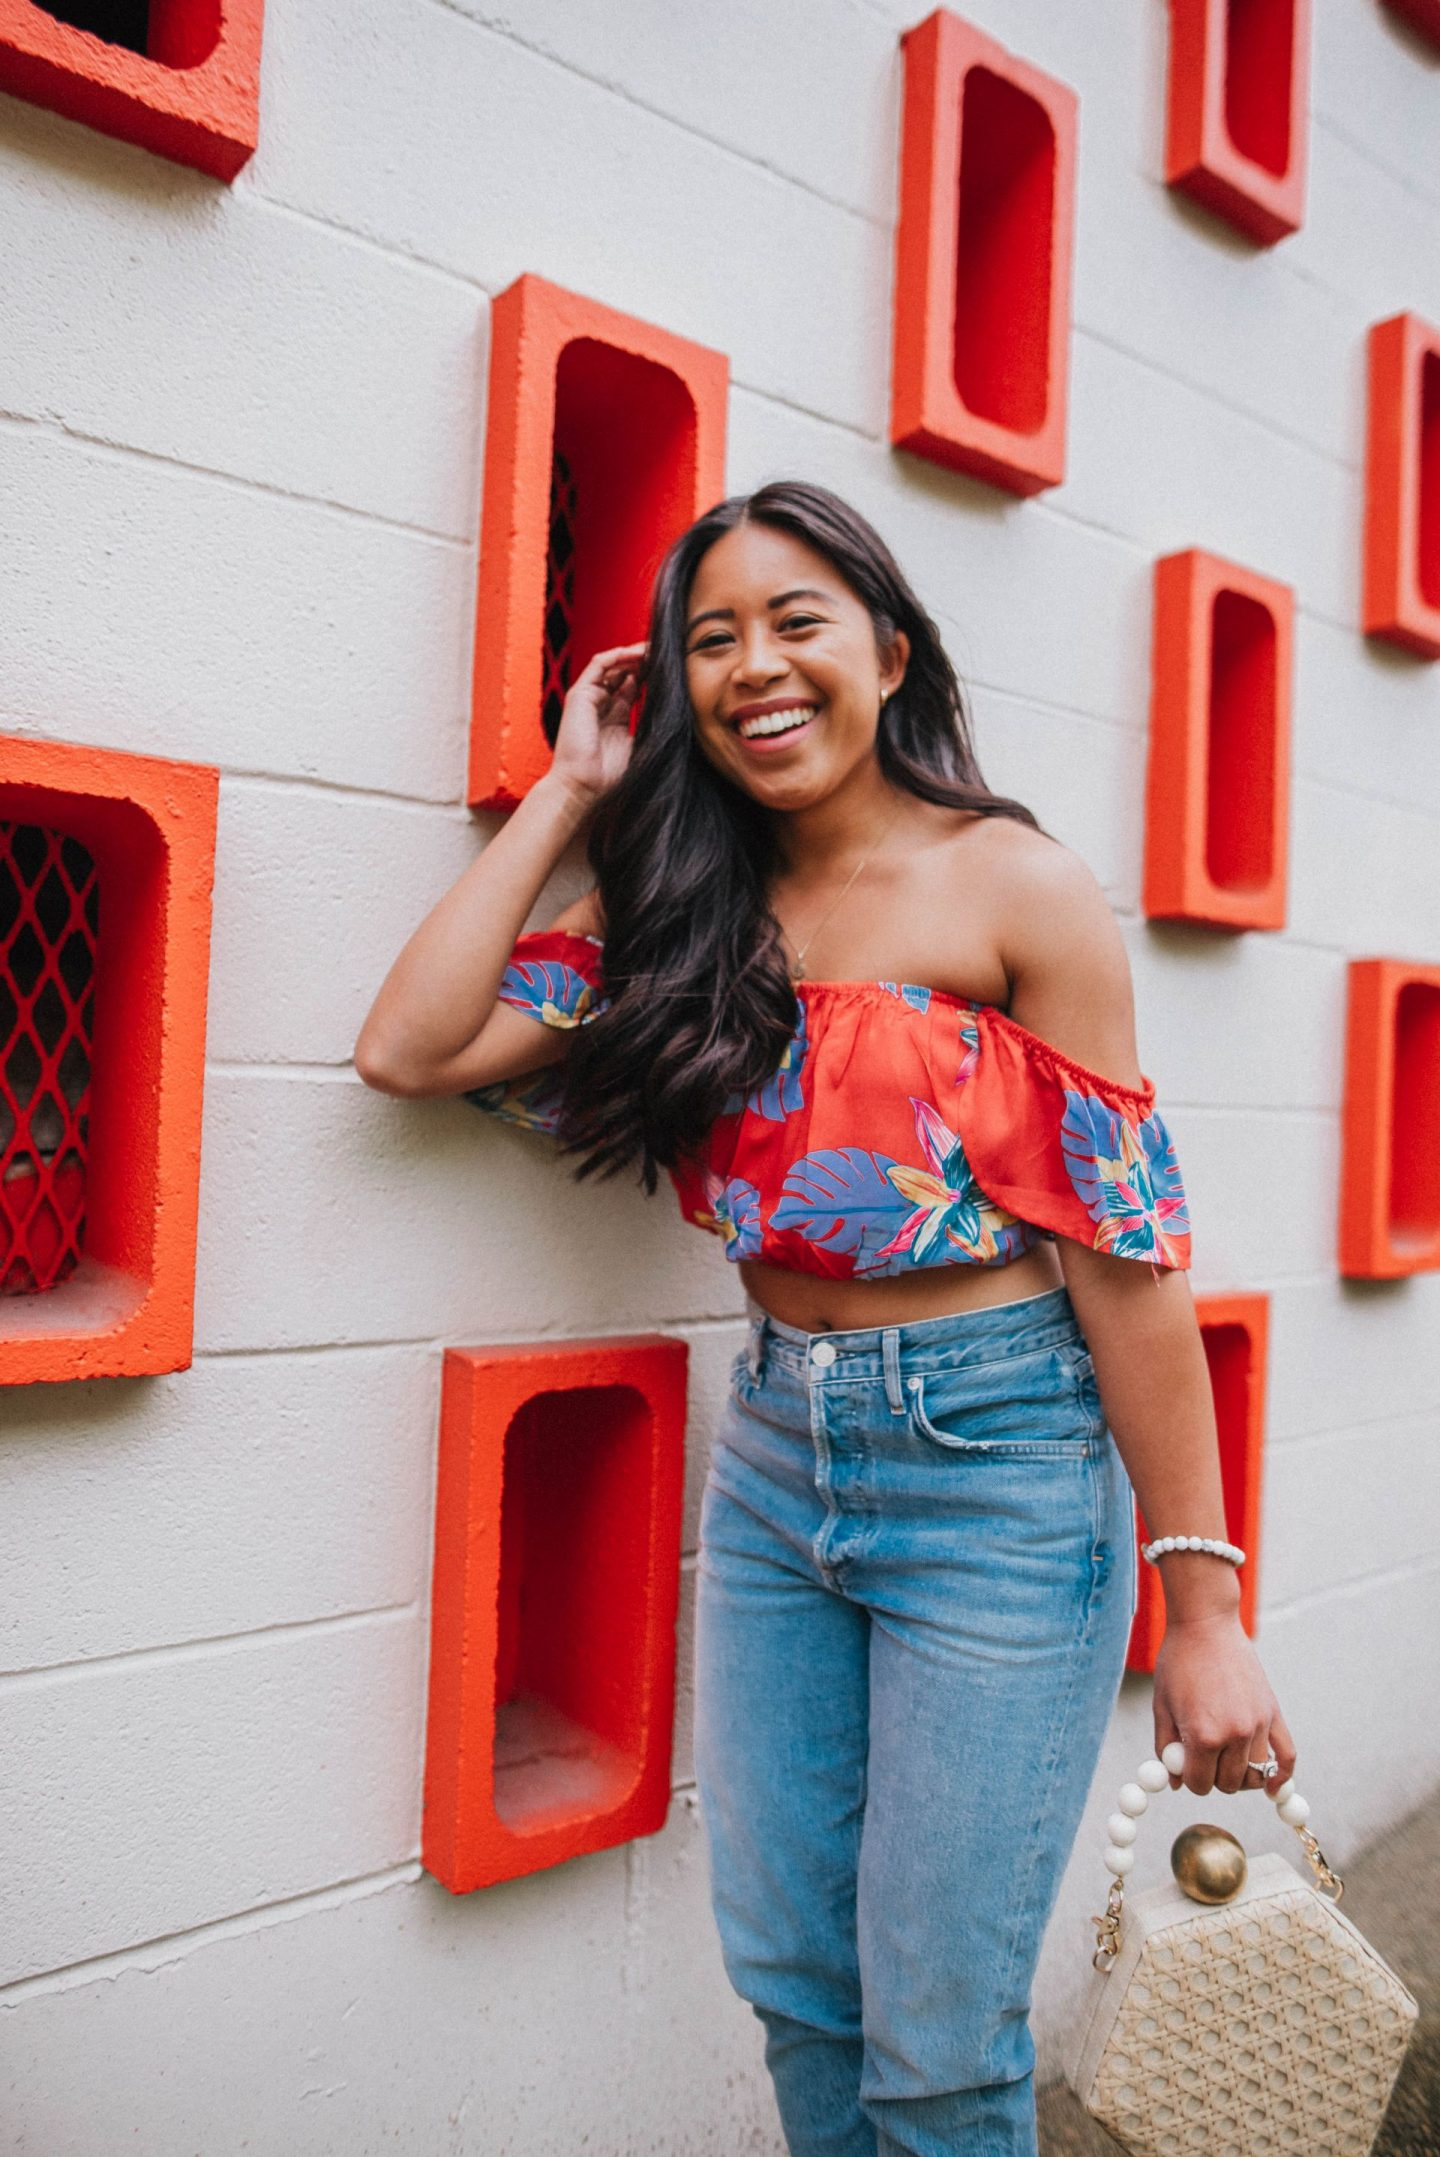 Seattle's Most Instagram-worthy Places – photo spots in Queen Anne – Photo spots in Seattle – Seattle photo shoot locations - Most Instagrammable Places in Queen Anne